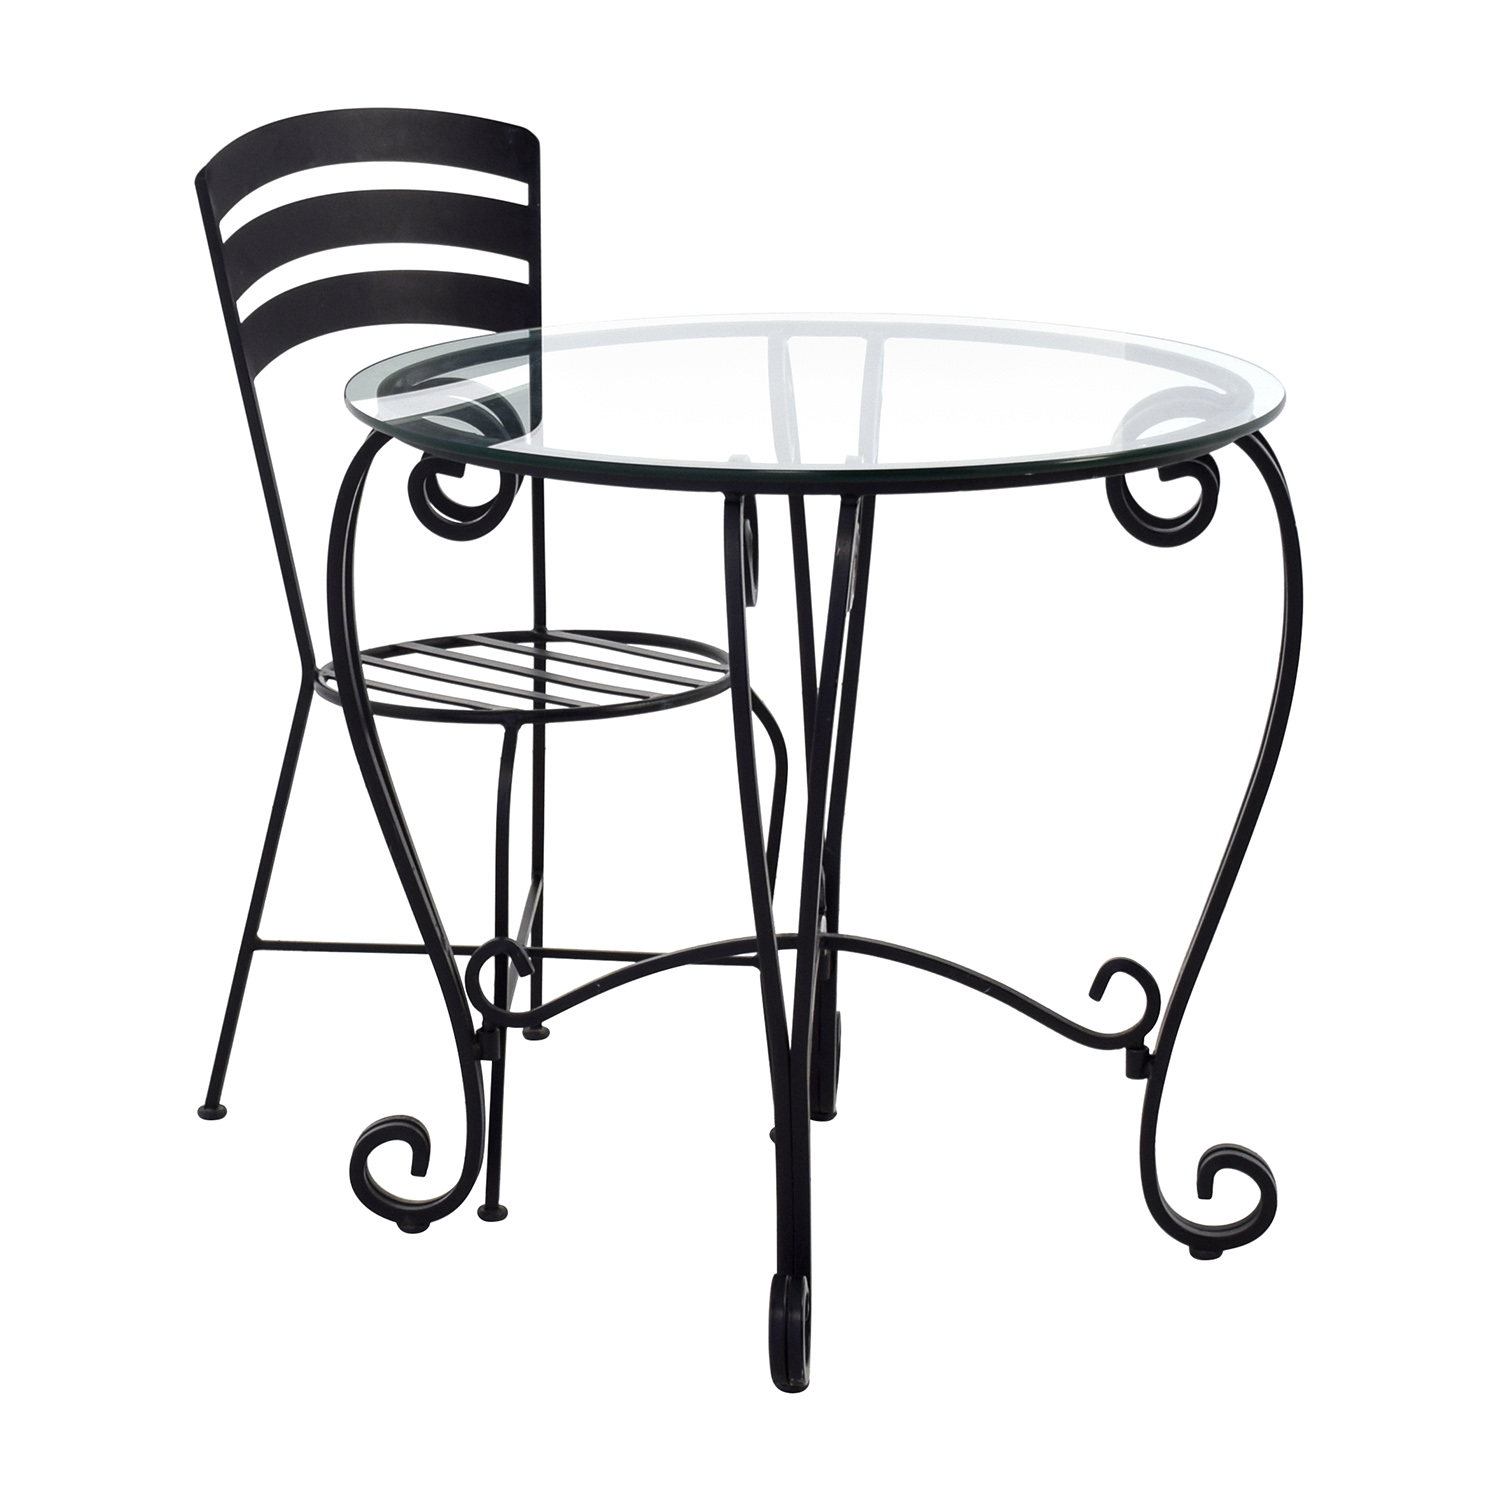 ... Buy Wrought Iron Round Glass Top Breakfast Table Tables ...